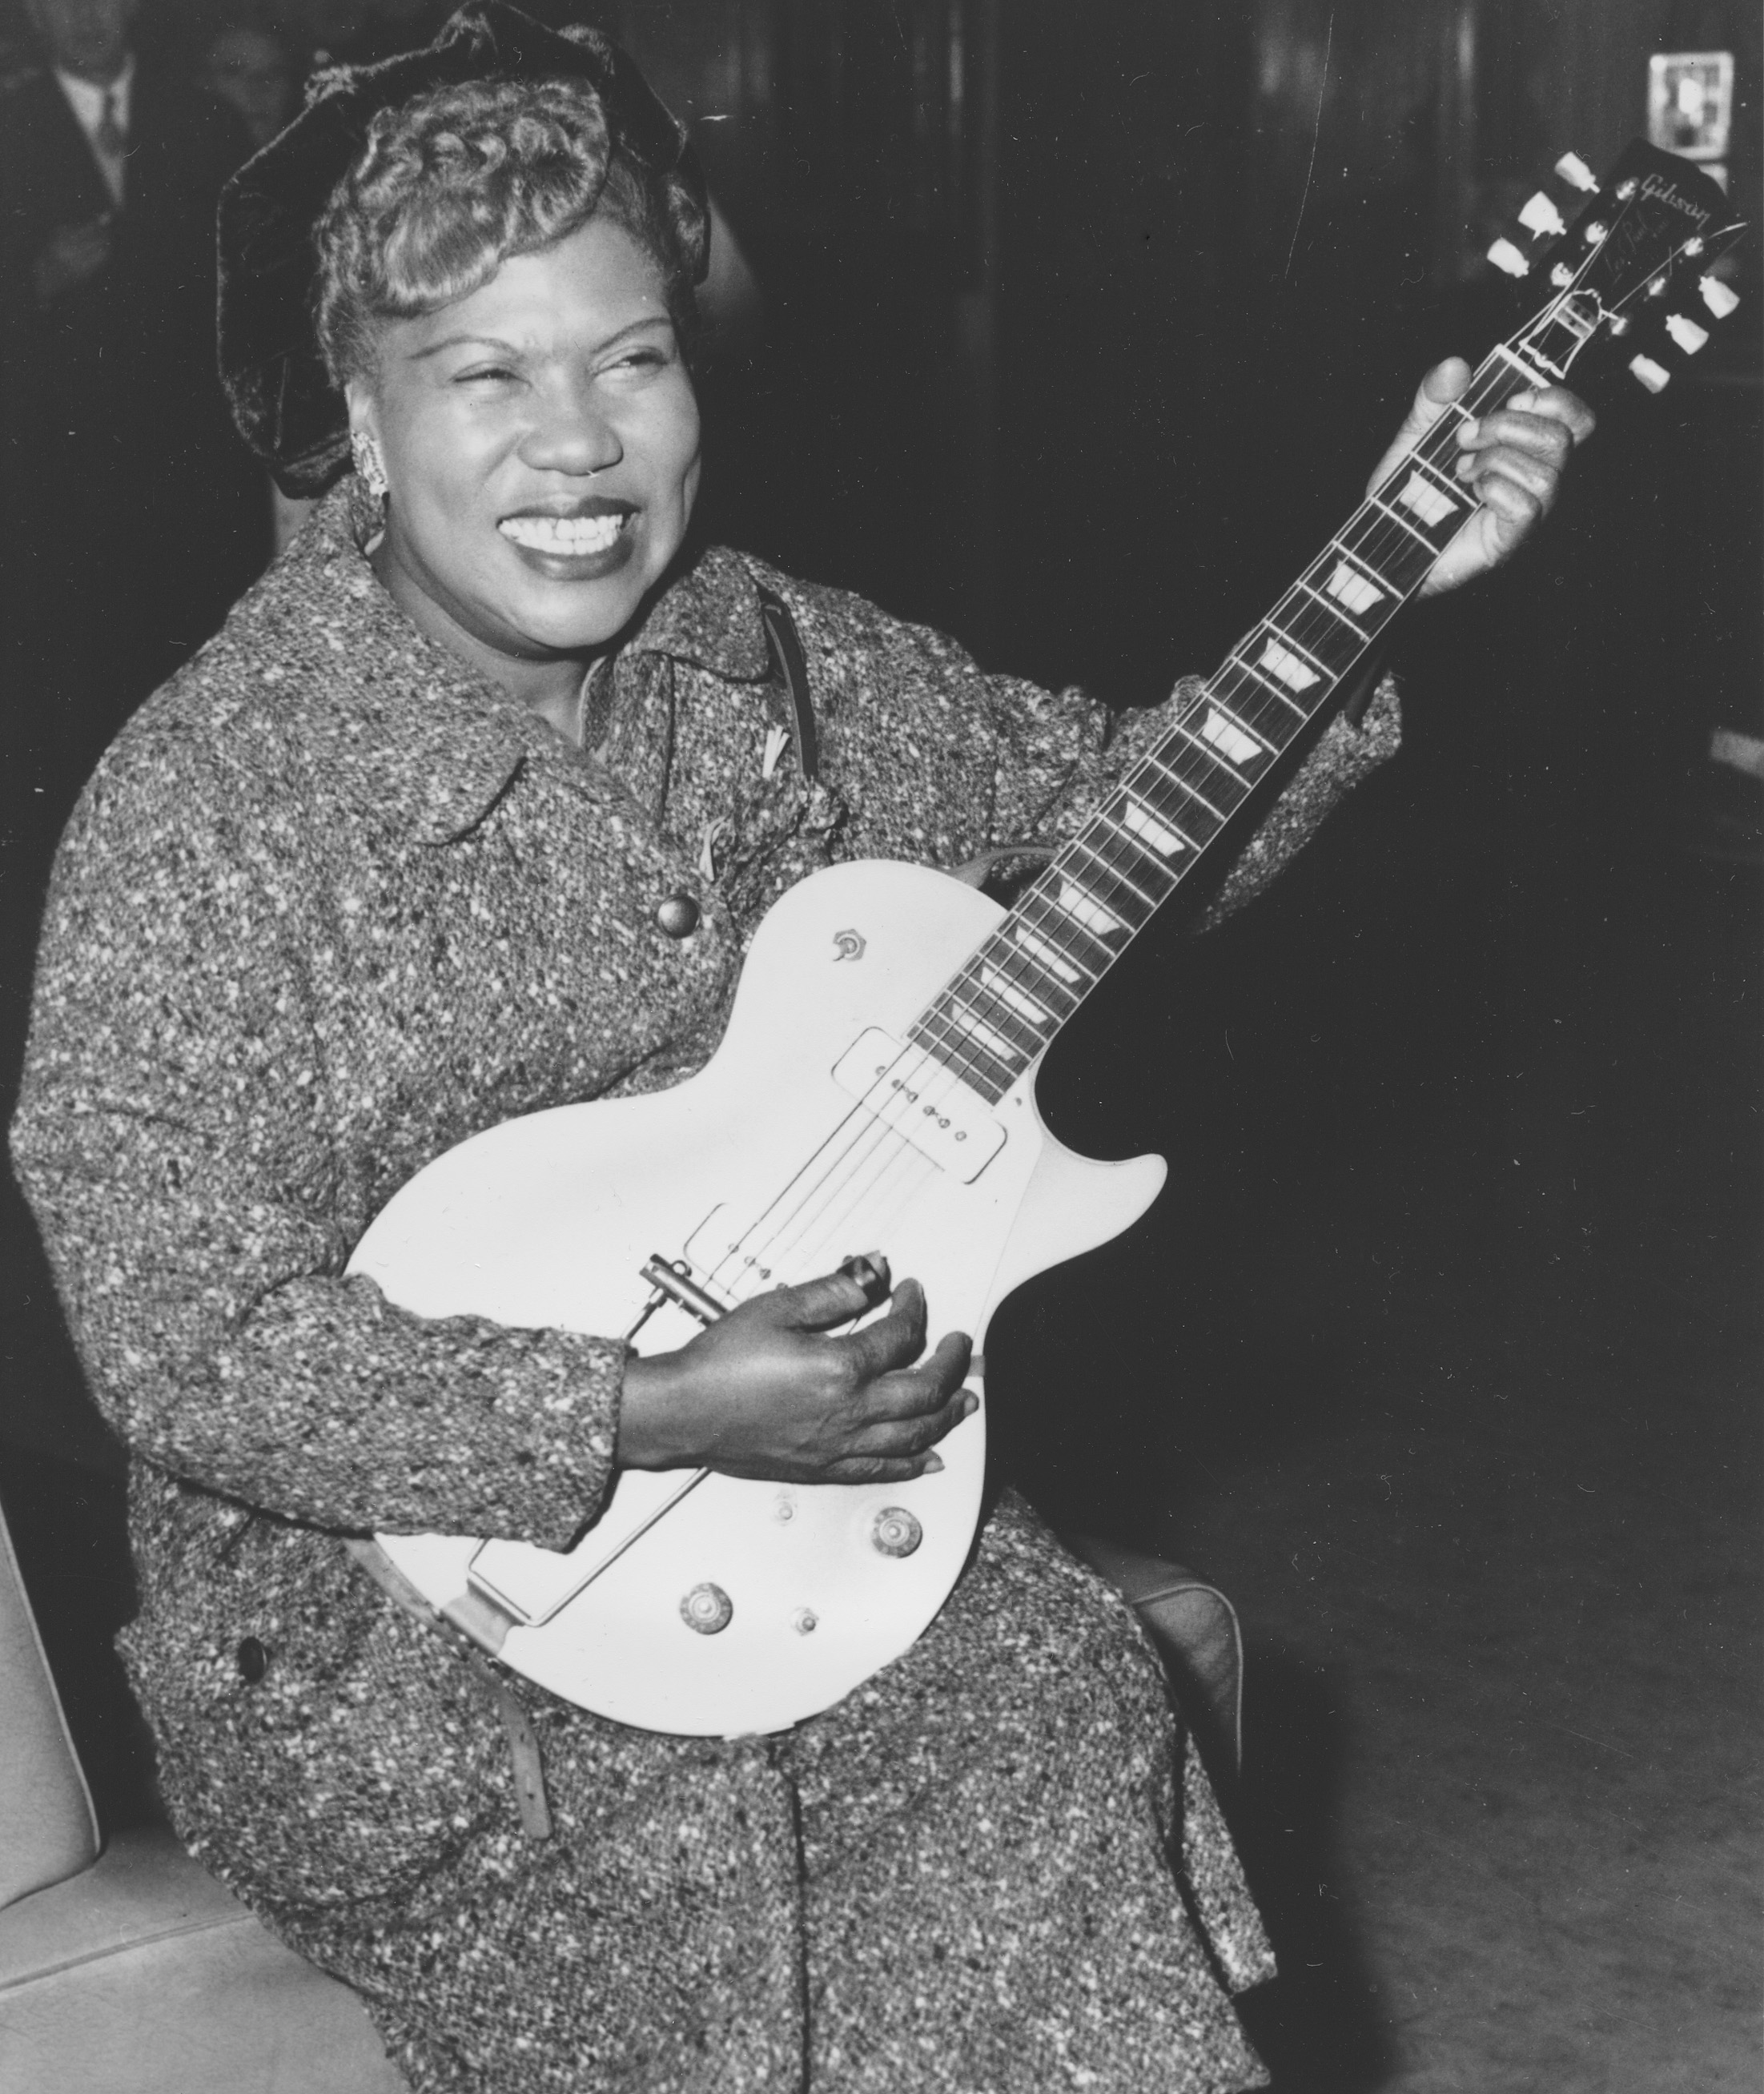 Sister Rosetta Tharpe, guitar-playing American gospel singer, gives an inpromptu performance in a lounge at London Airport, following her arrival from New York on November 21, 1957. (AP Photo)